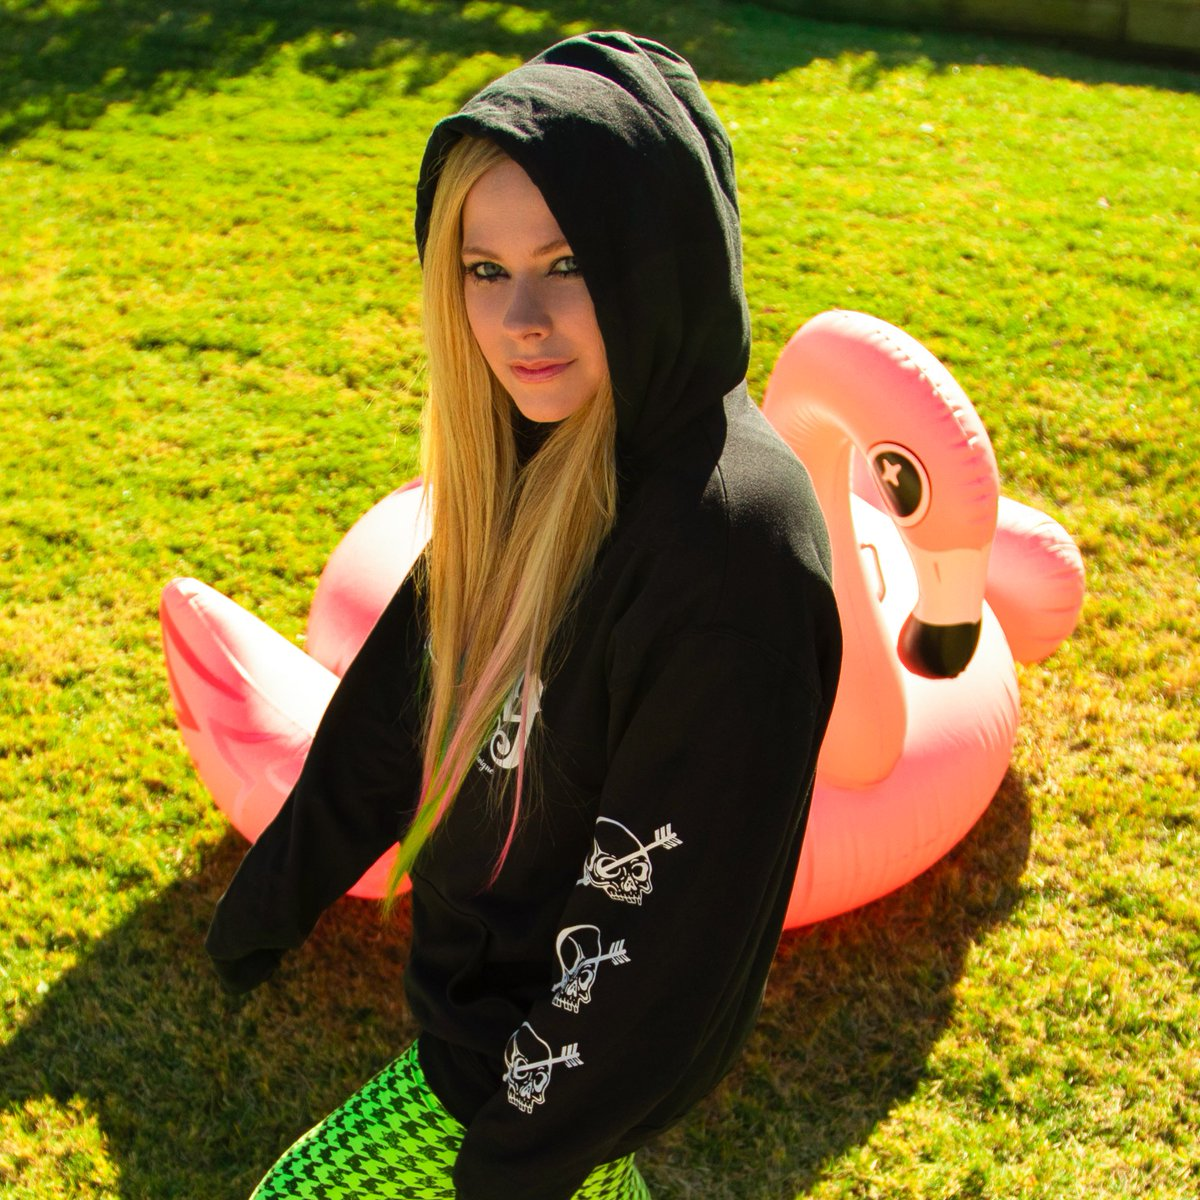 My new favorite @AbbeyDawn sweatshirt. I'm giving some away, tell me what you did this weekend to enter! ⚡️⚡️⚡️